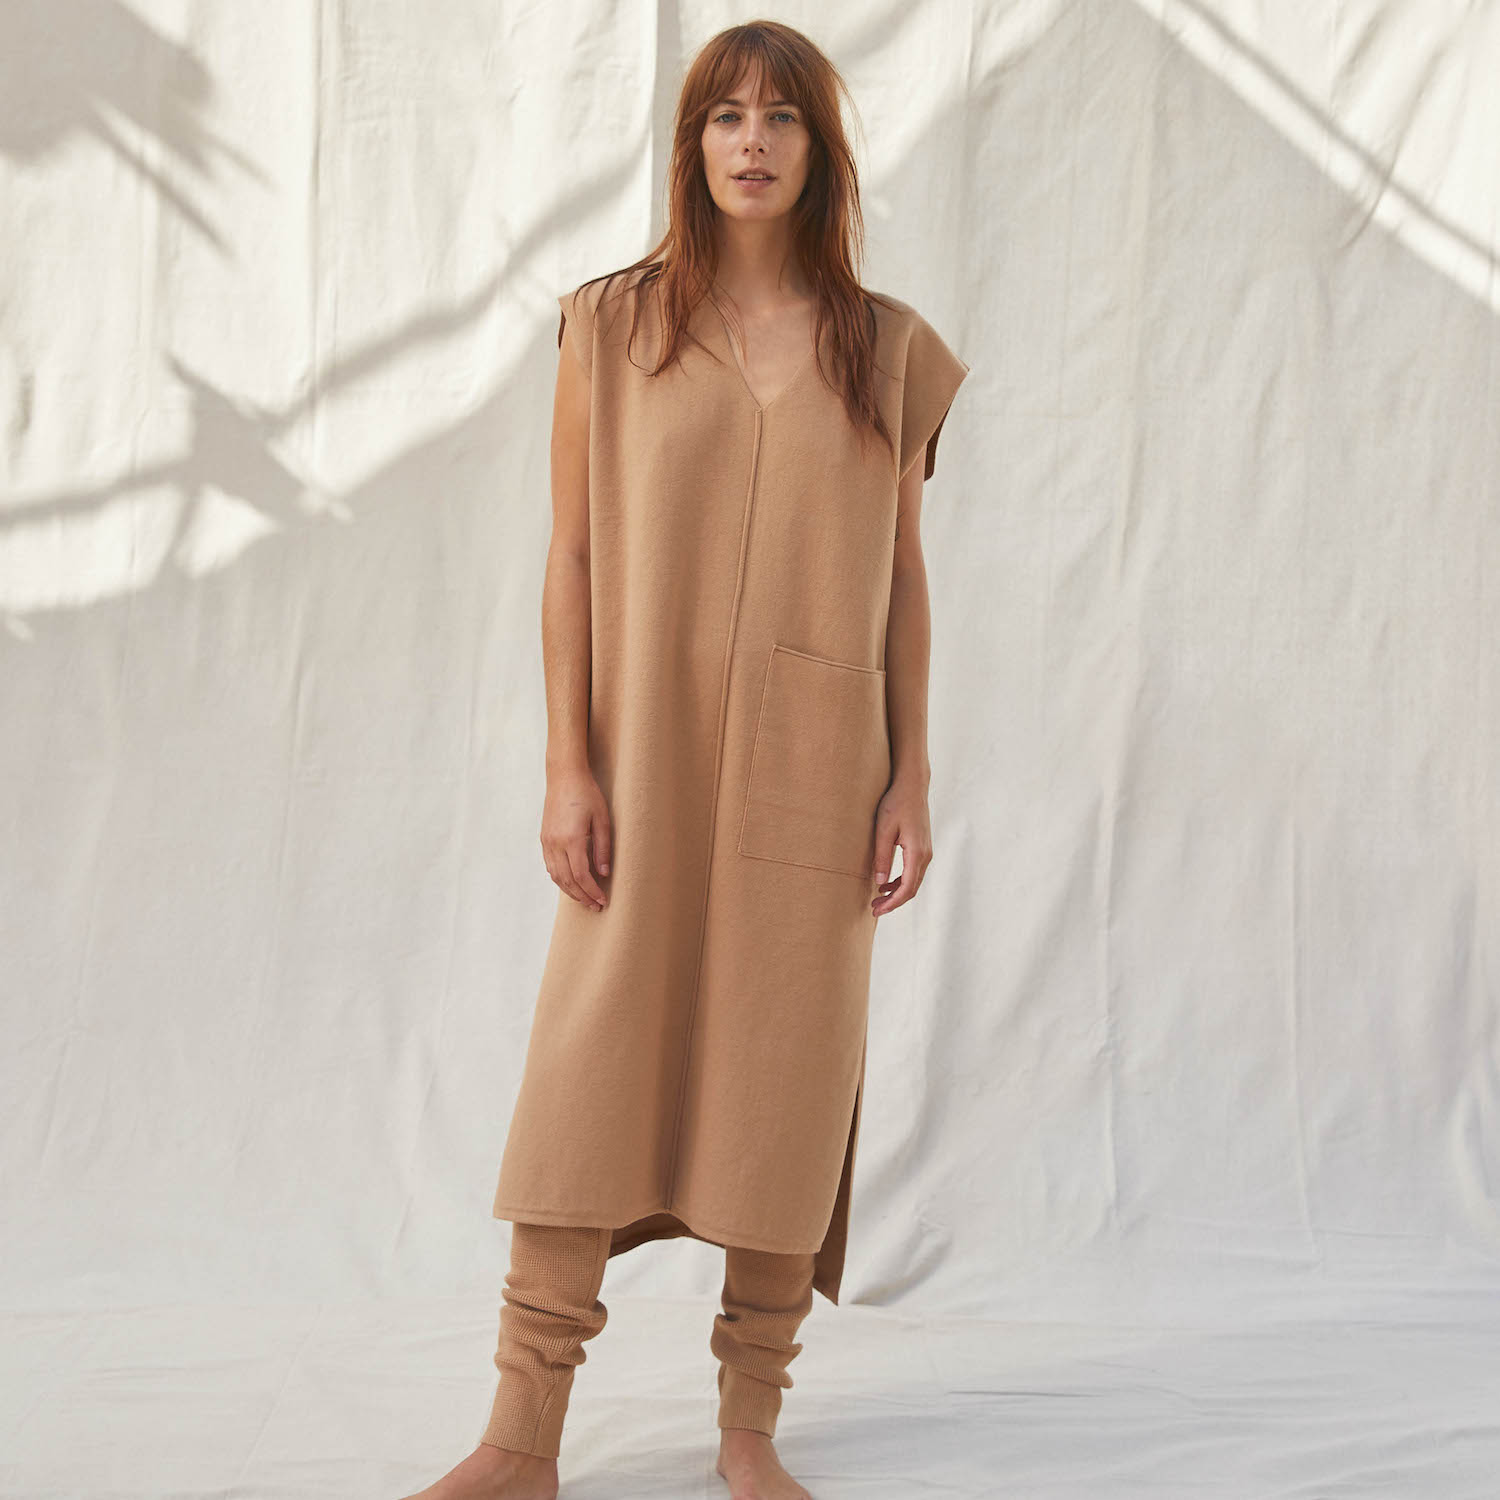 Lunya Sleepwear Cozy Cotton Silk Dress - #Ginger